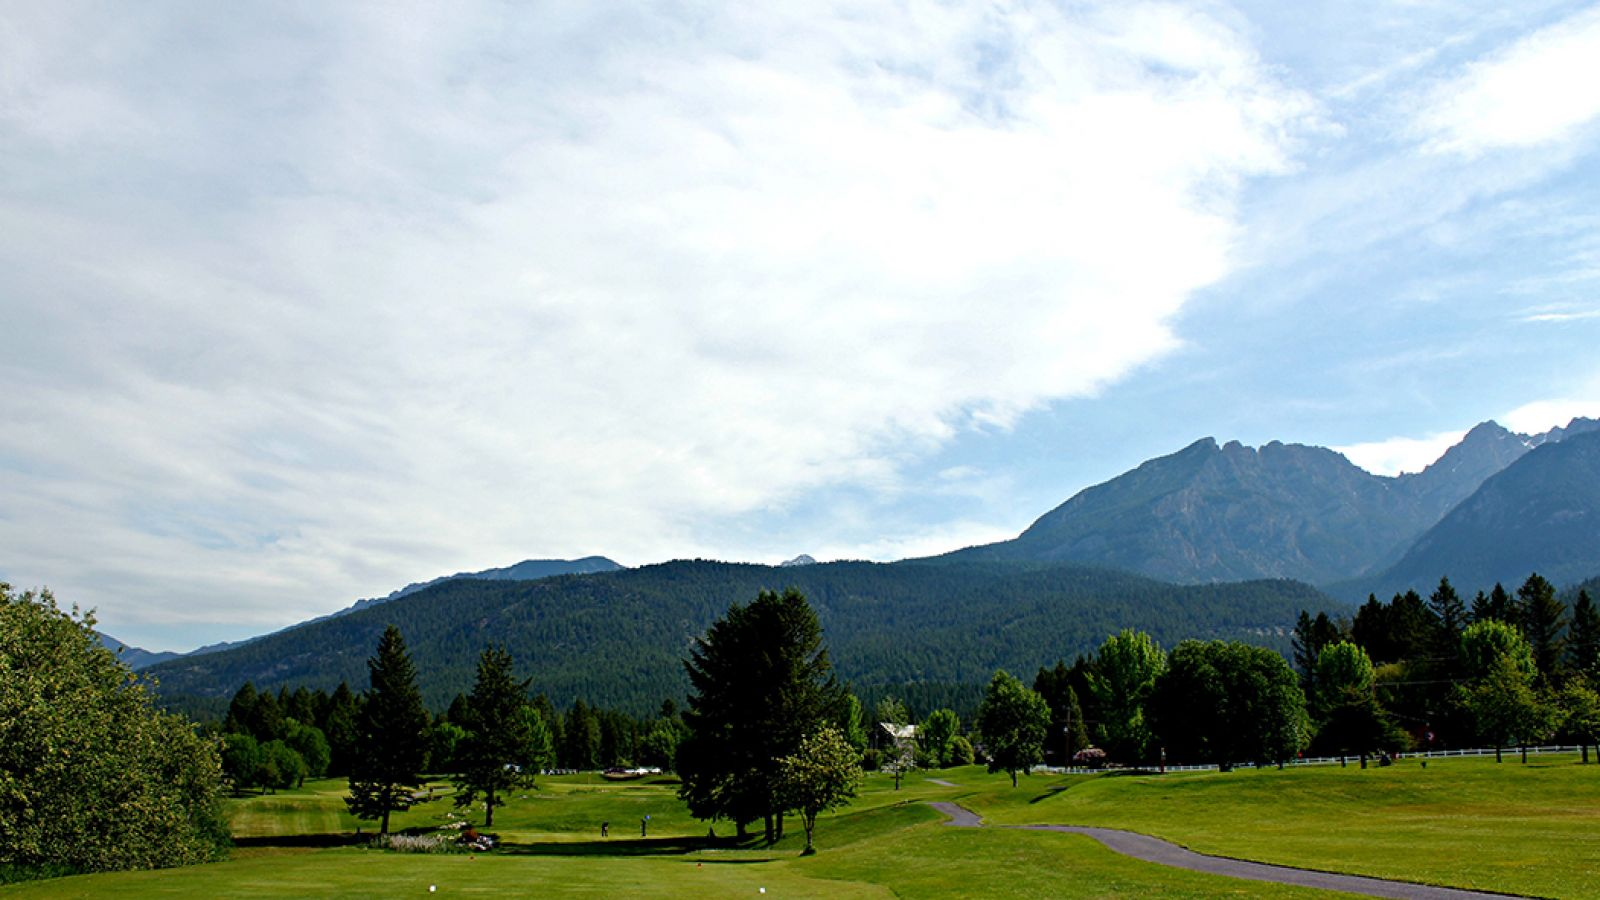 9-hole course at Fairmont Hot Springs Resort.